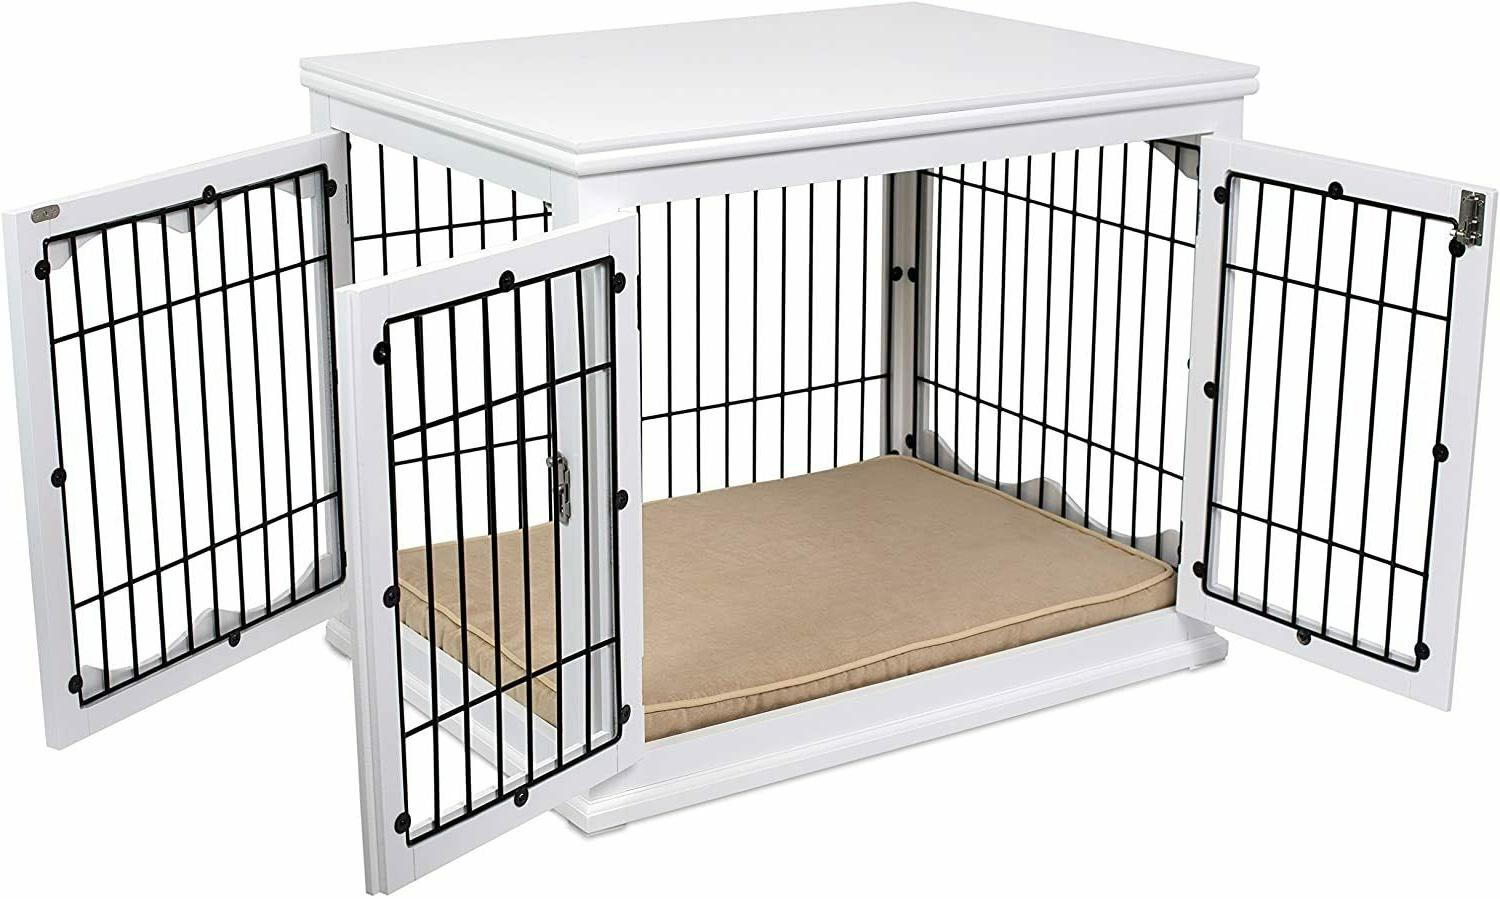 3 Door Dog Pet Crate End Table Cage Kennel Furniture House B